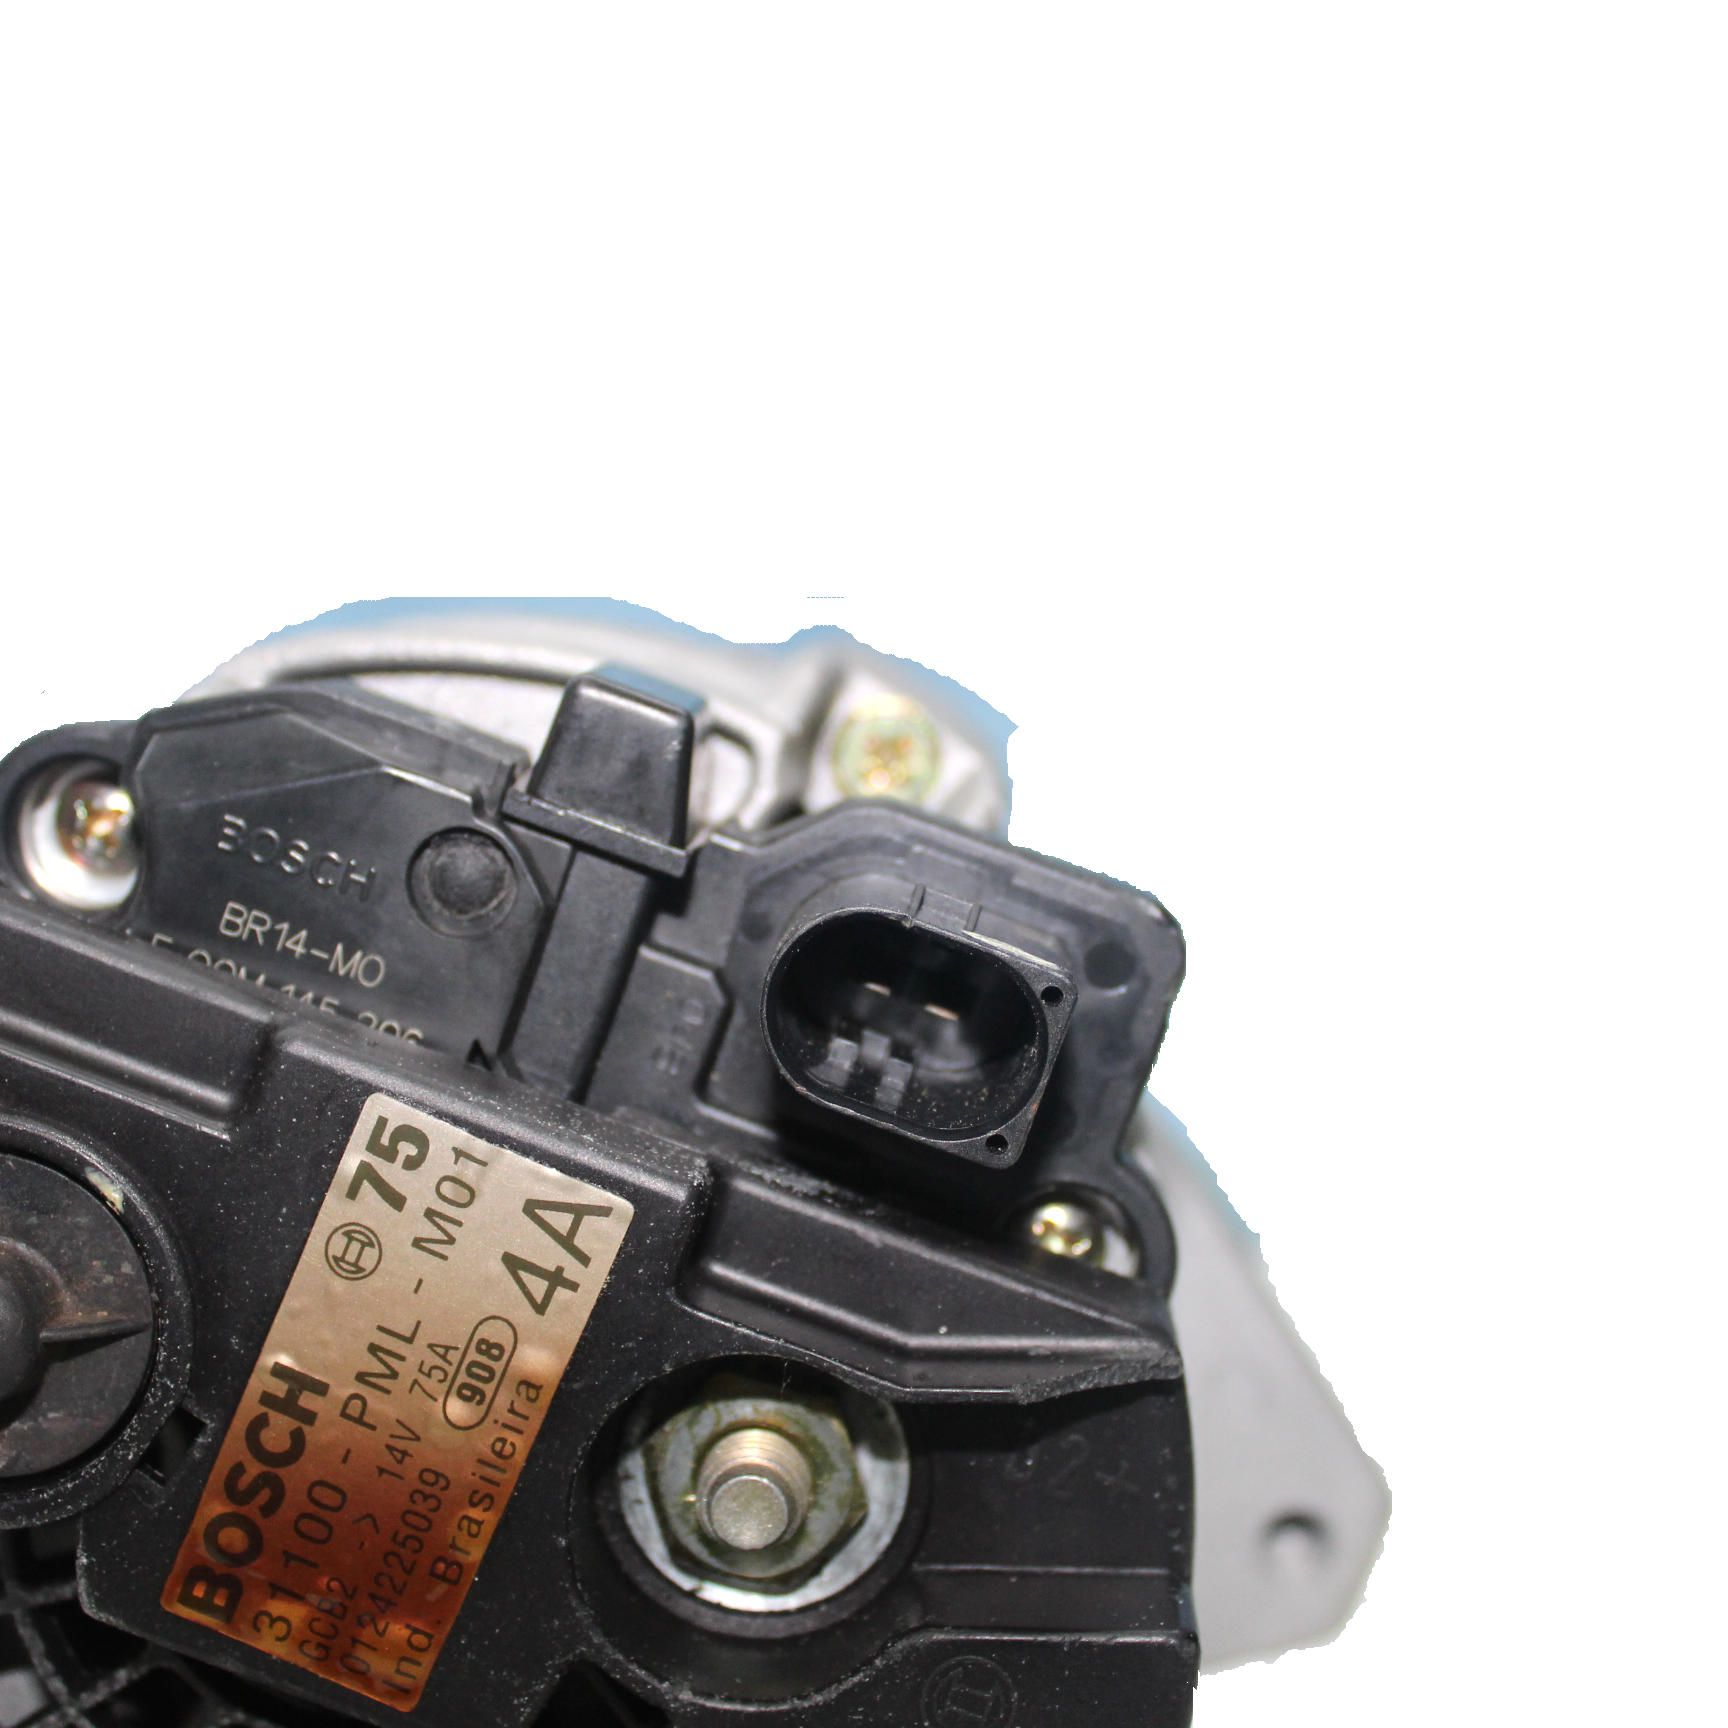 Alternador Bosch 75AH Civic 01...05 - Recondicionado